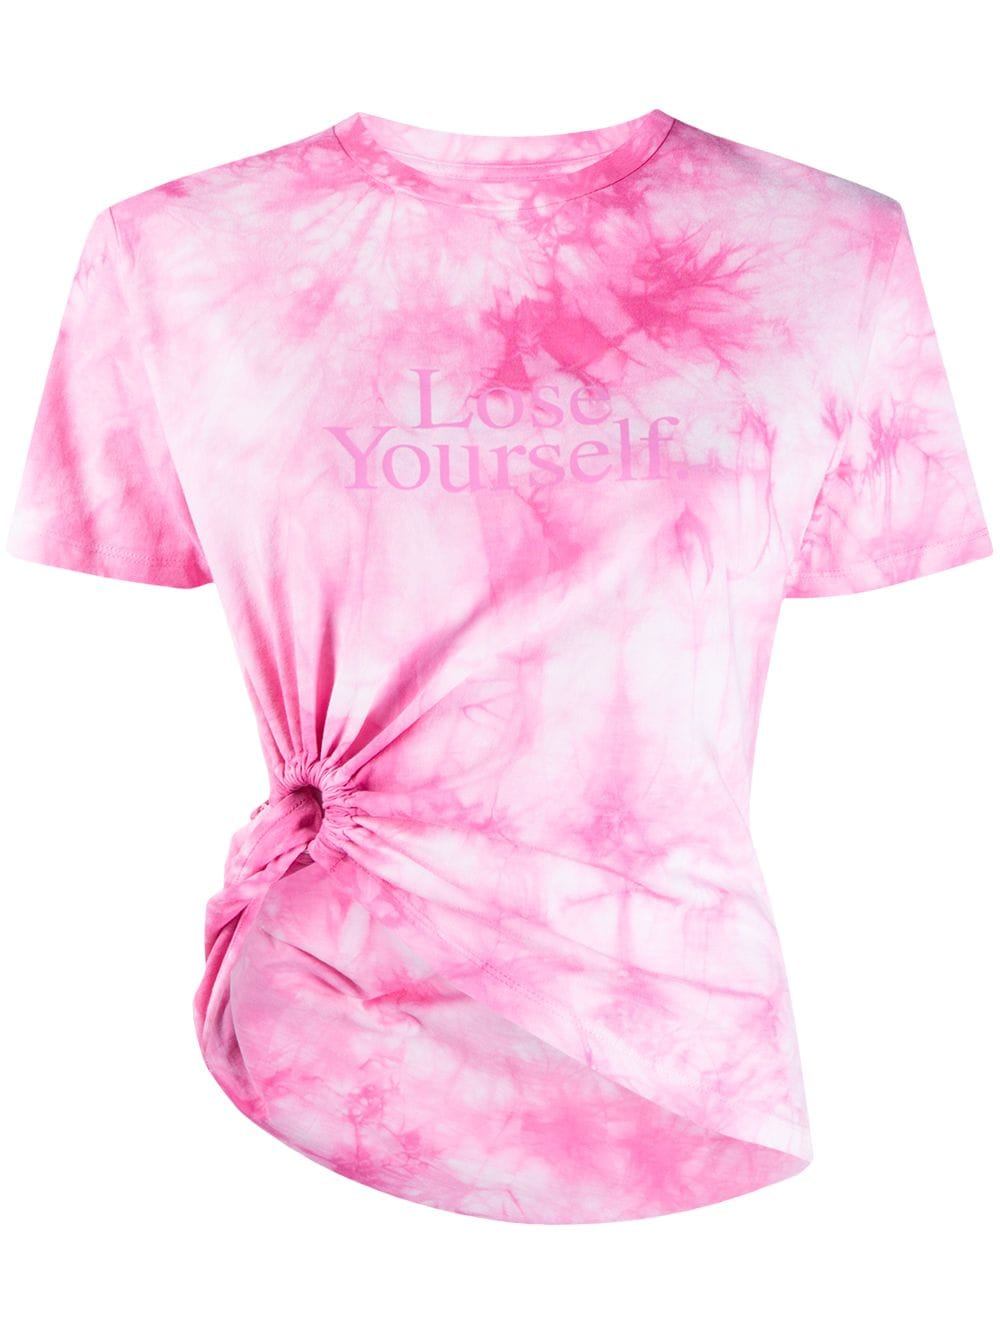 Lose Yourself Tie-Dye T-Shirt